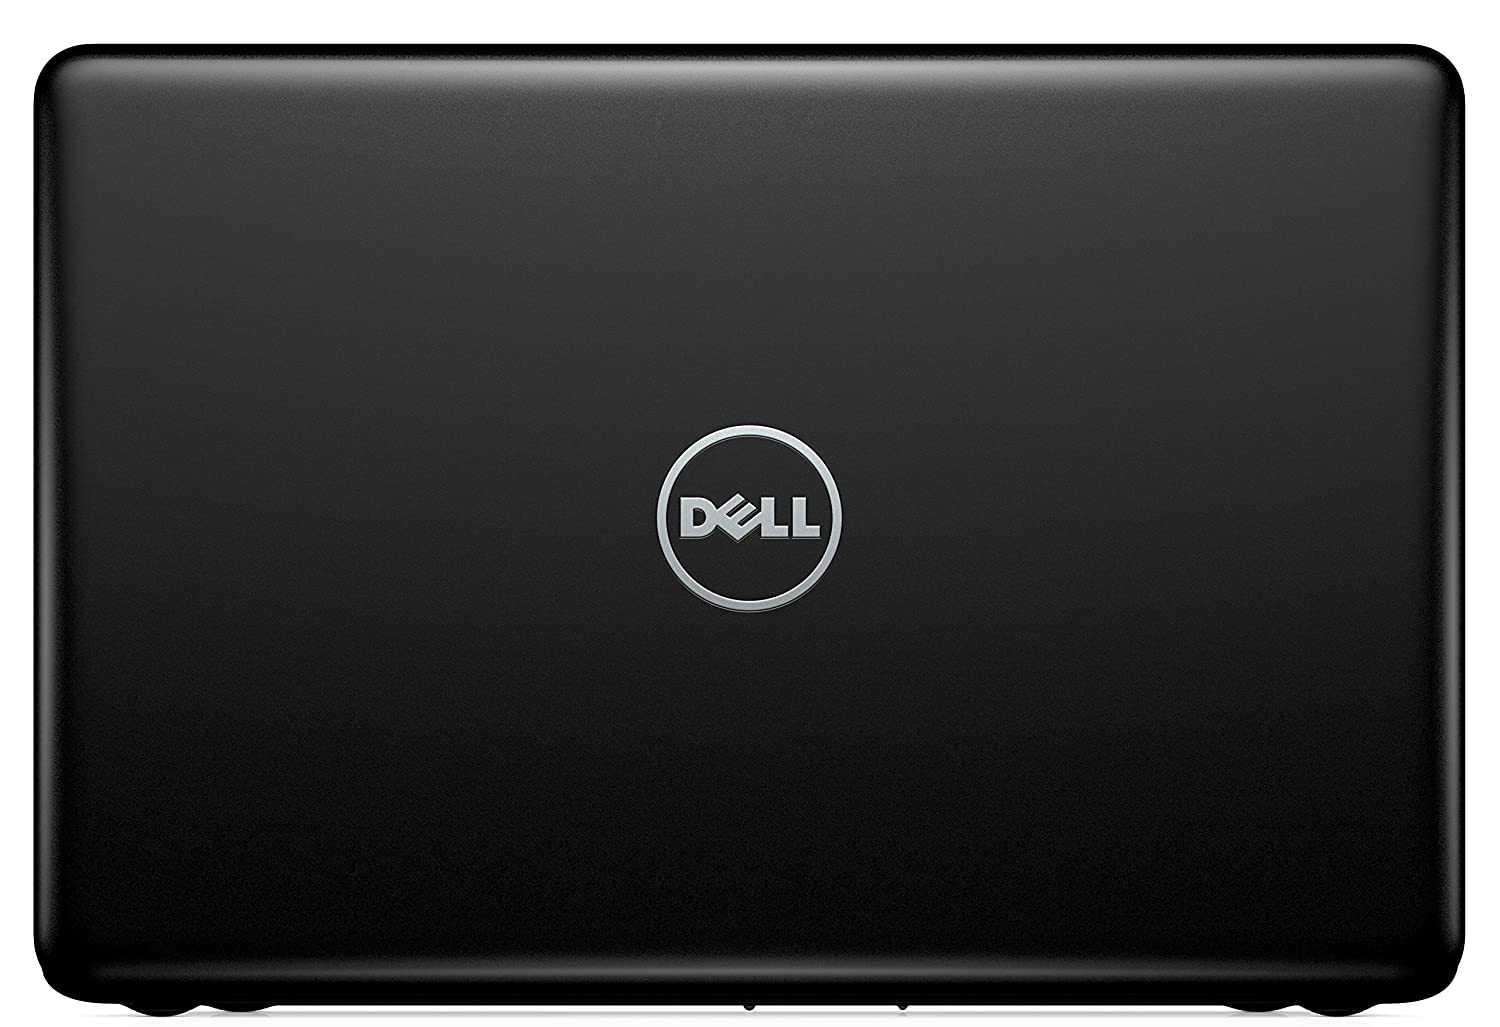 Dell Inspiron 15 5000 156 Inch Laptop Black Intel Core I5 7th Mouse Usb Branded Hitam Gen 8 Gb Ram 1 Tb Hdd Windows 10 Computers Accessories